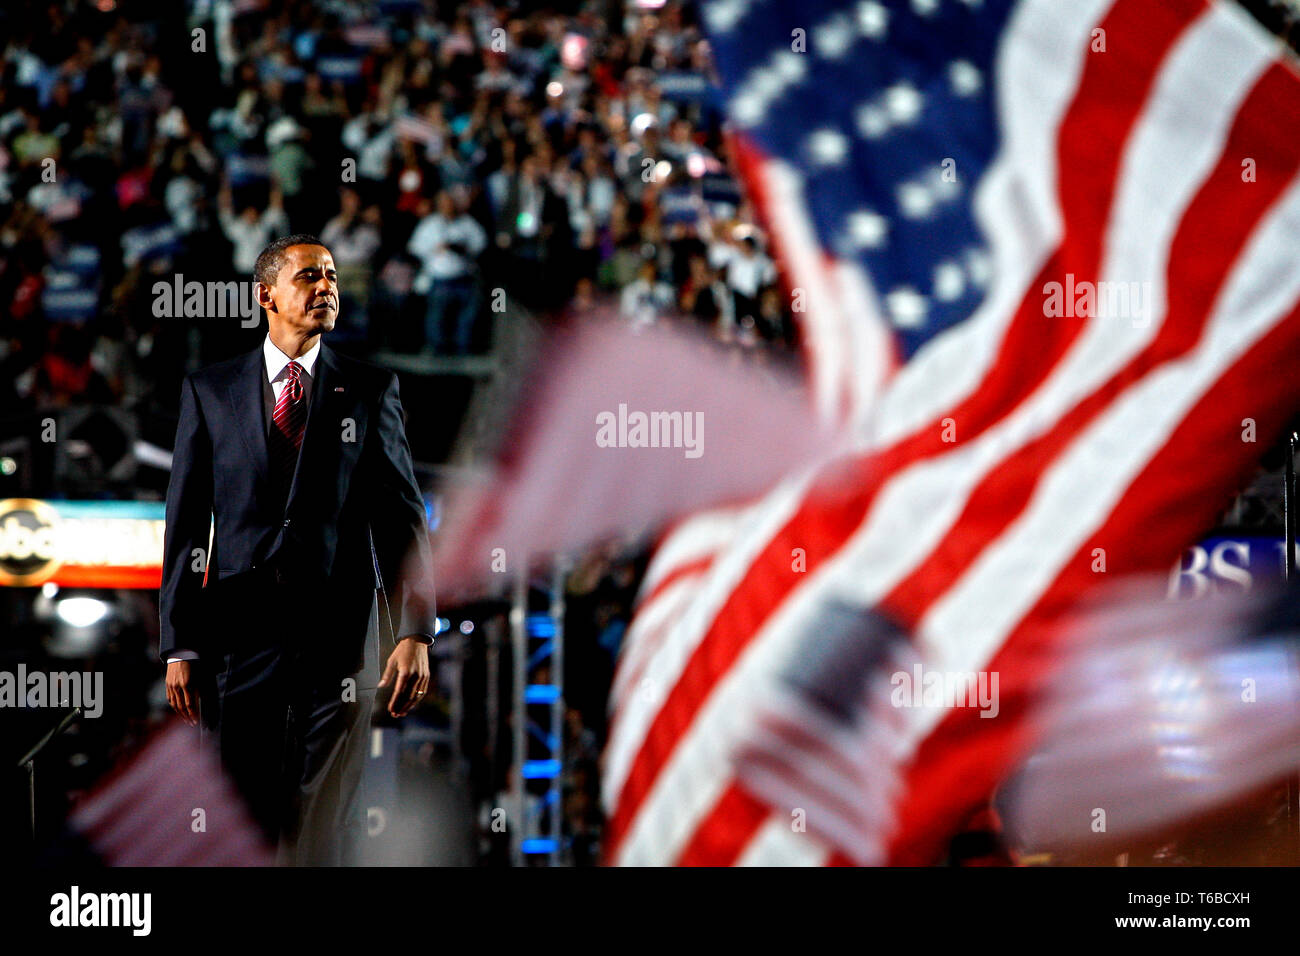 The DNC Convention in Denver. On the last day, Presidential Hopeful Barack Obama holds his acceptance speach at the Invesco Arena - Stock Image